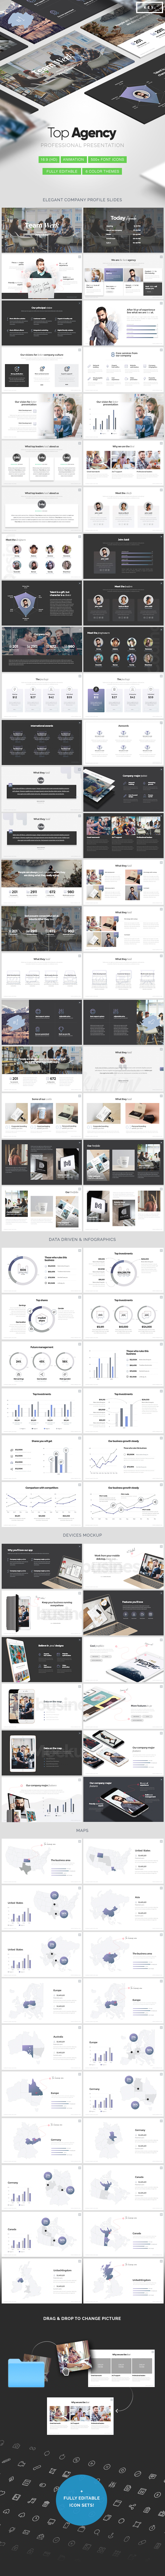 Top Agency - Powerpoint Template for Agencies - PowerPoint Templates Presentation Templates